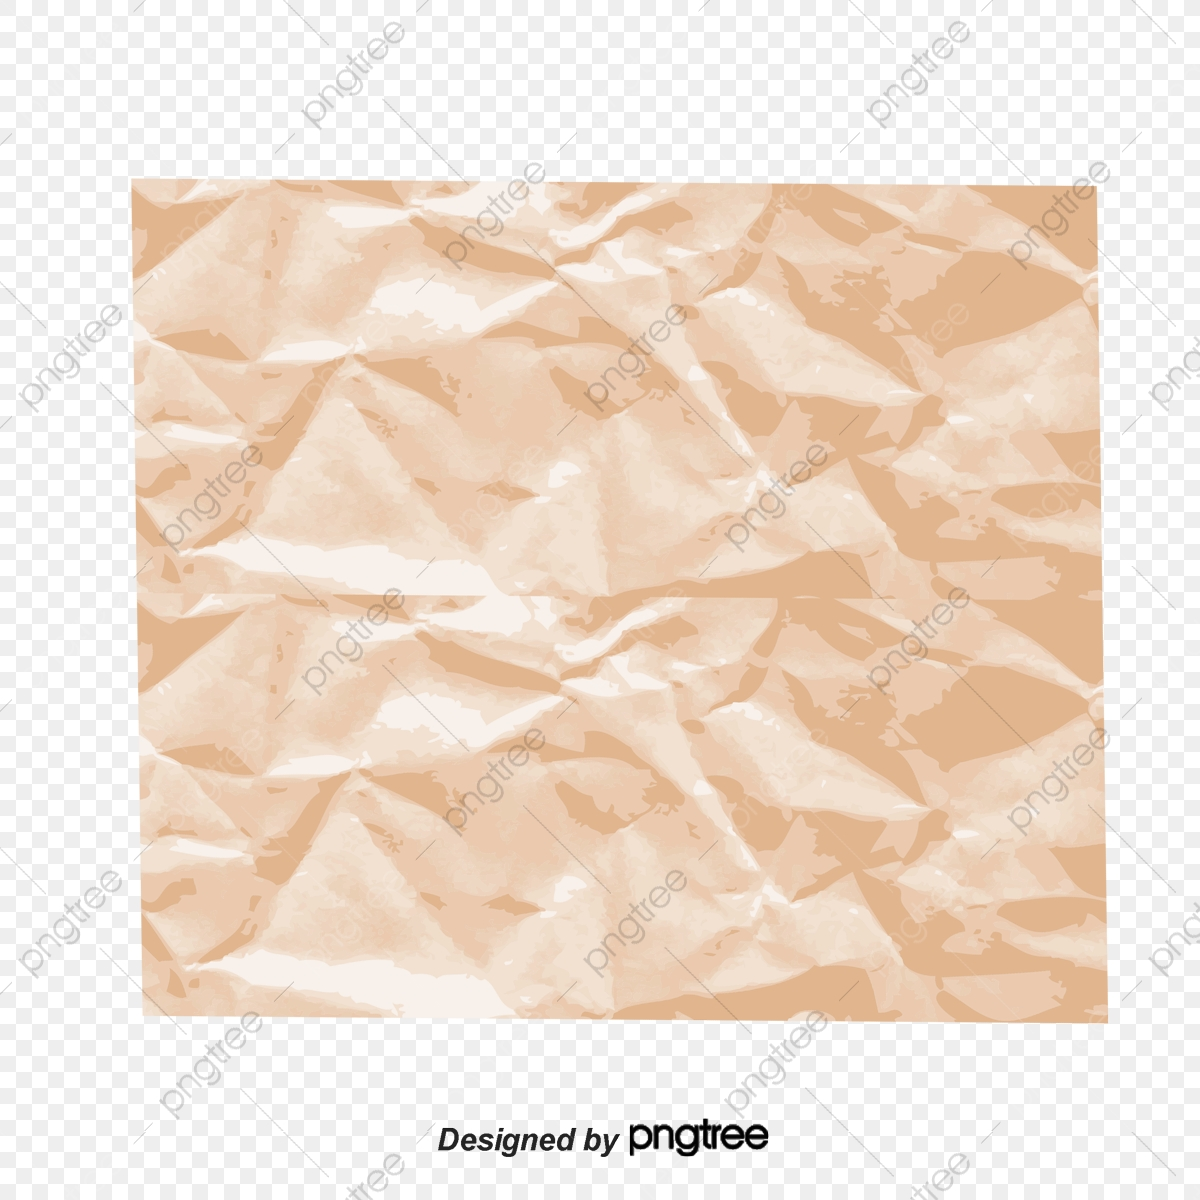 Crumpled Paper PNG, Transparent Crumpled Paper PNG Image Free Download -  PNGkey